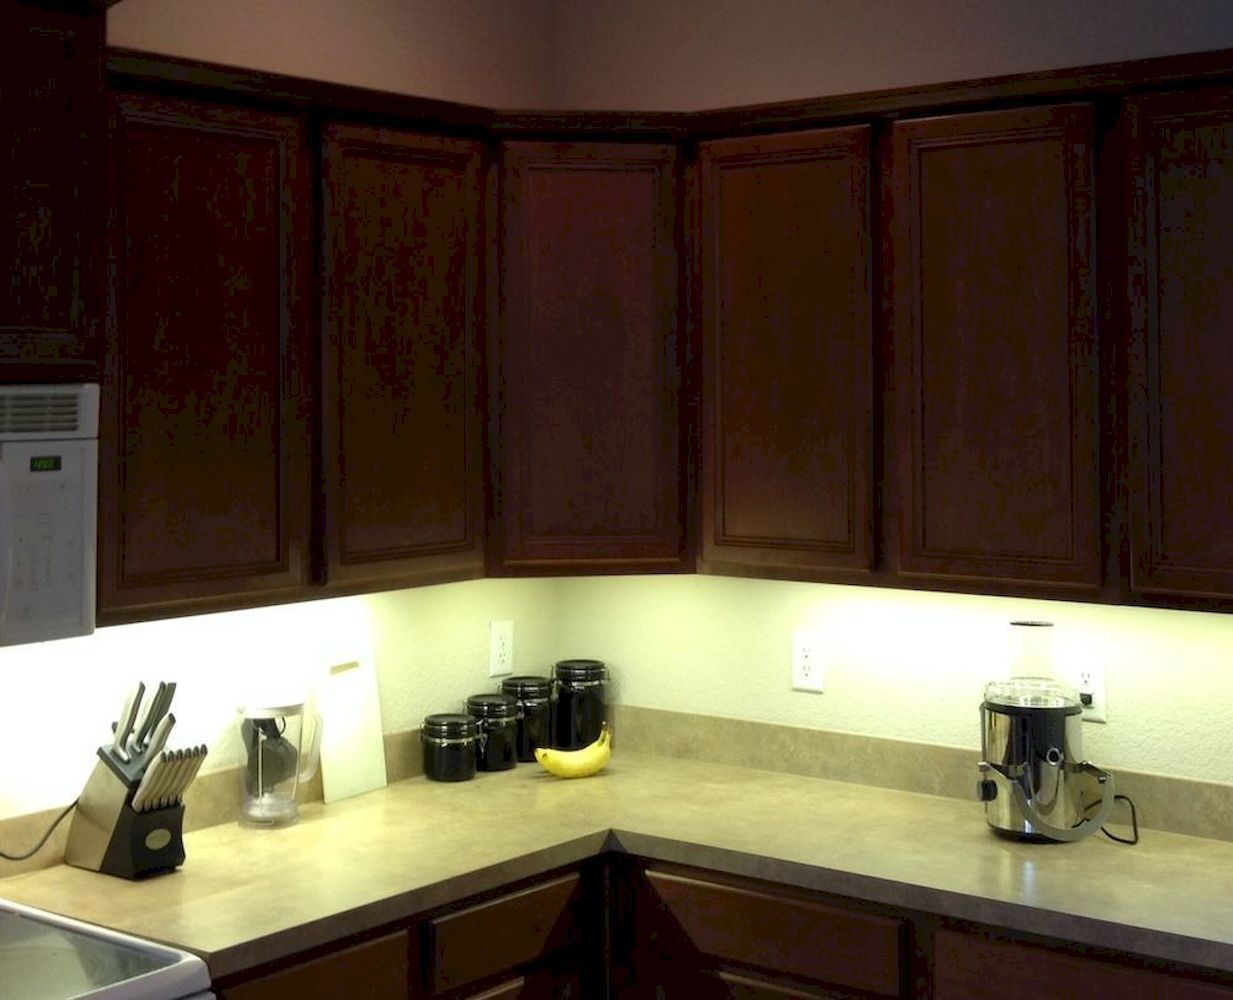 How To Choose Best Types Of Cabinet Lighting For Ambient Lighting Effects In 2020 Kitchen Under Cabinet Lighting Light Kitchen Cabinets Led Under Cabinet Lighting